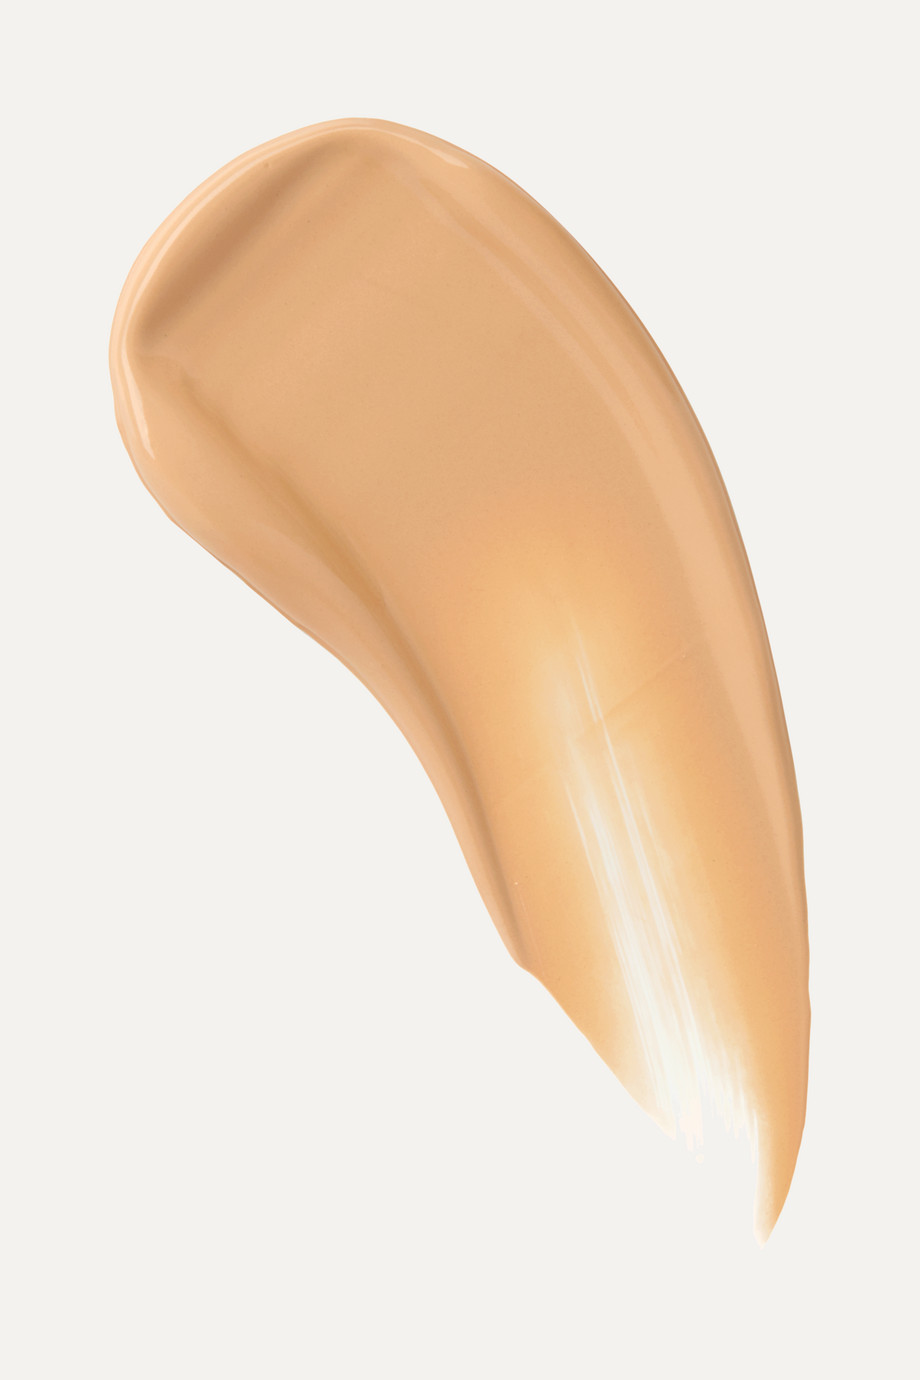 Charlotte Tilbury Magic Foundation Flawless Long-Lasting Coverage SPF15 - Shade 5, 30ml